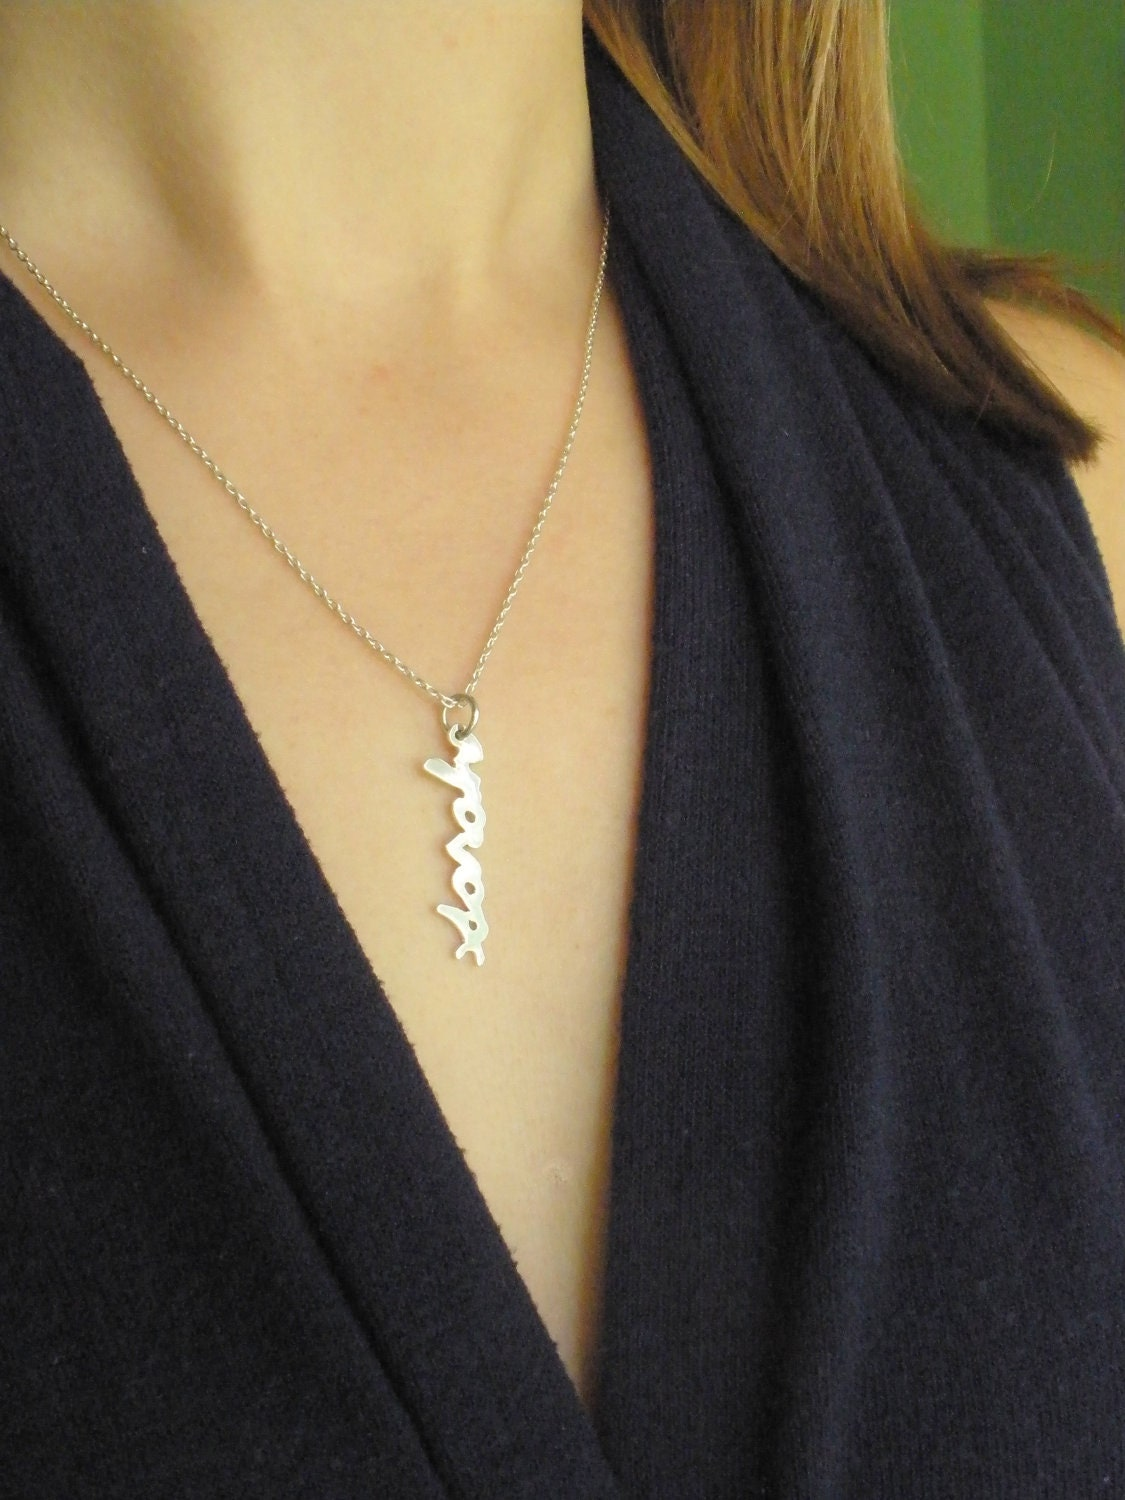 baby name necklace sterling silver name by alexisromeojewelry